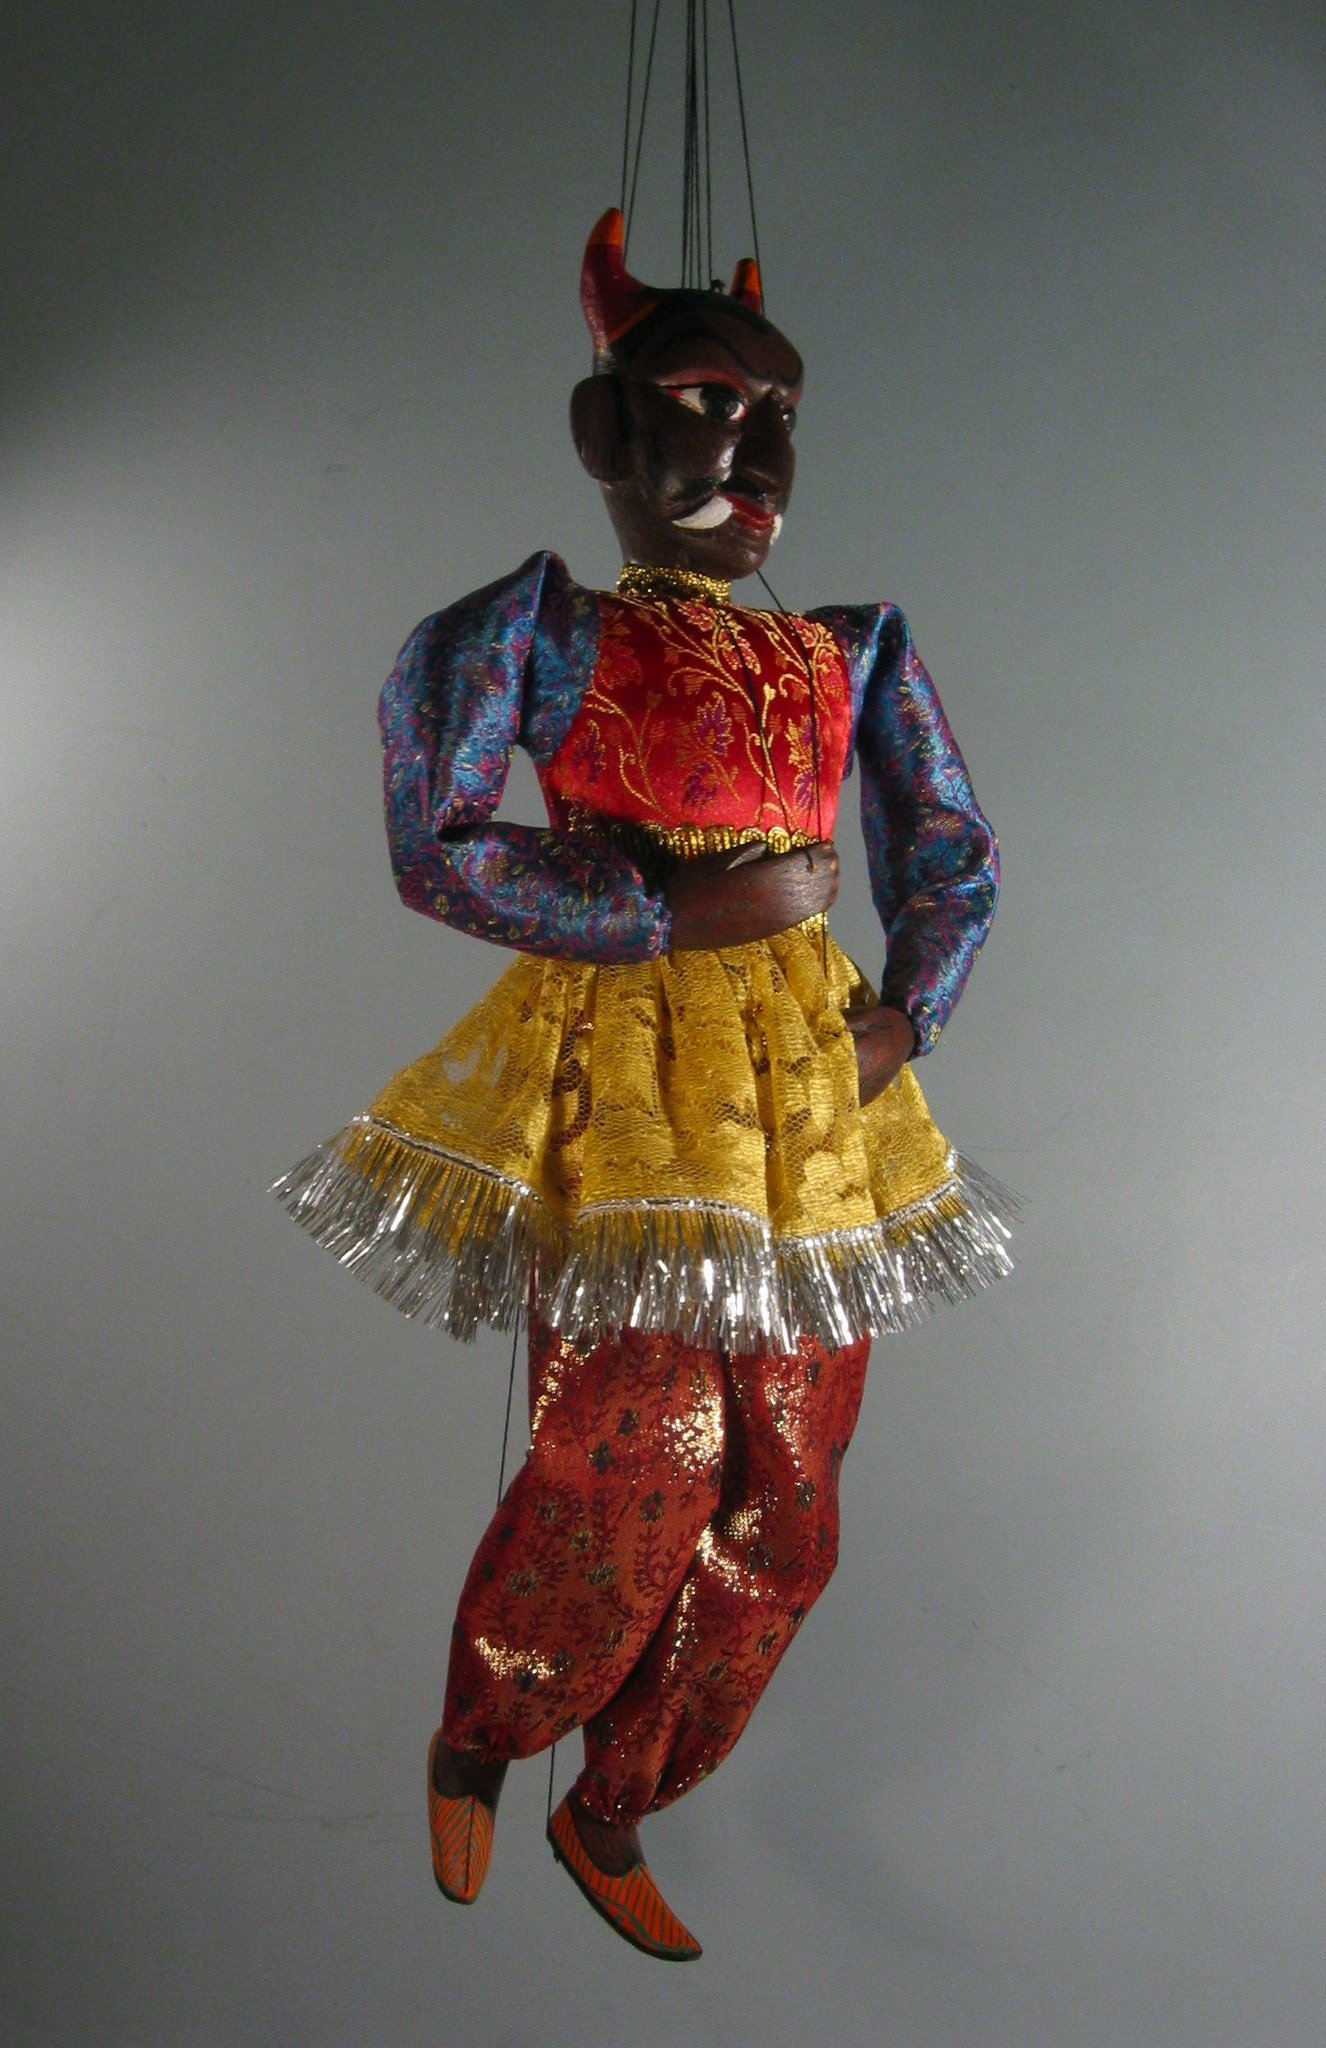 Un <em>jadugar</em> (magi<em>c</em>ien), une marionnette à subterfuge qui jongle ave<em>c</em> sa propre tête, <em>c</em>réé par Puran Bhatt (Delhi, Inde, 2003). Kathputli, hauteur: 59 <em>c</em>m. Colle<em>c</em>tion : Center for Puppetry Arts (Atlanta, Géorgie, États-Unis). Photo réproduite avec l'aimable autorisation de Center for Puppetry Arts